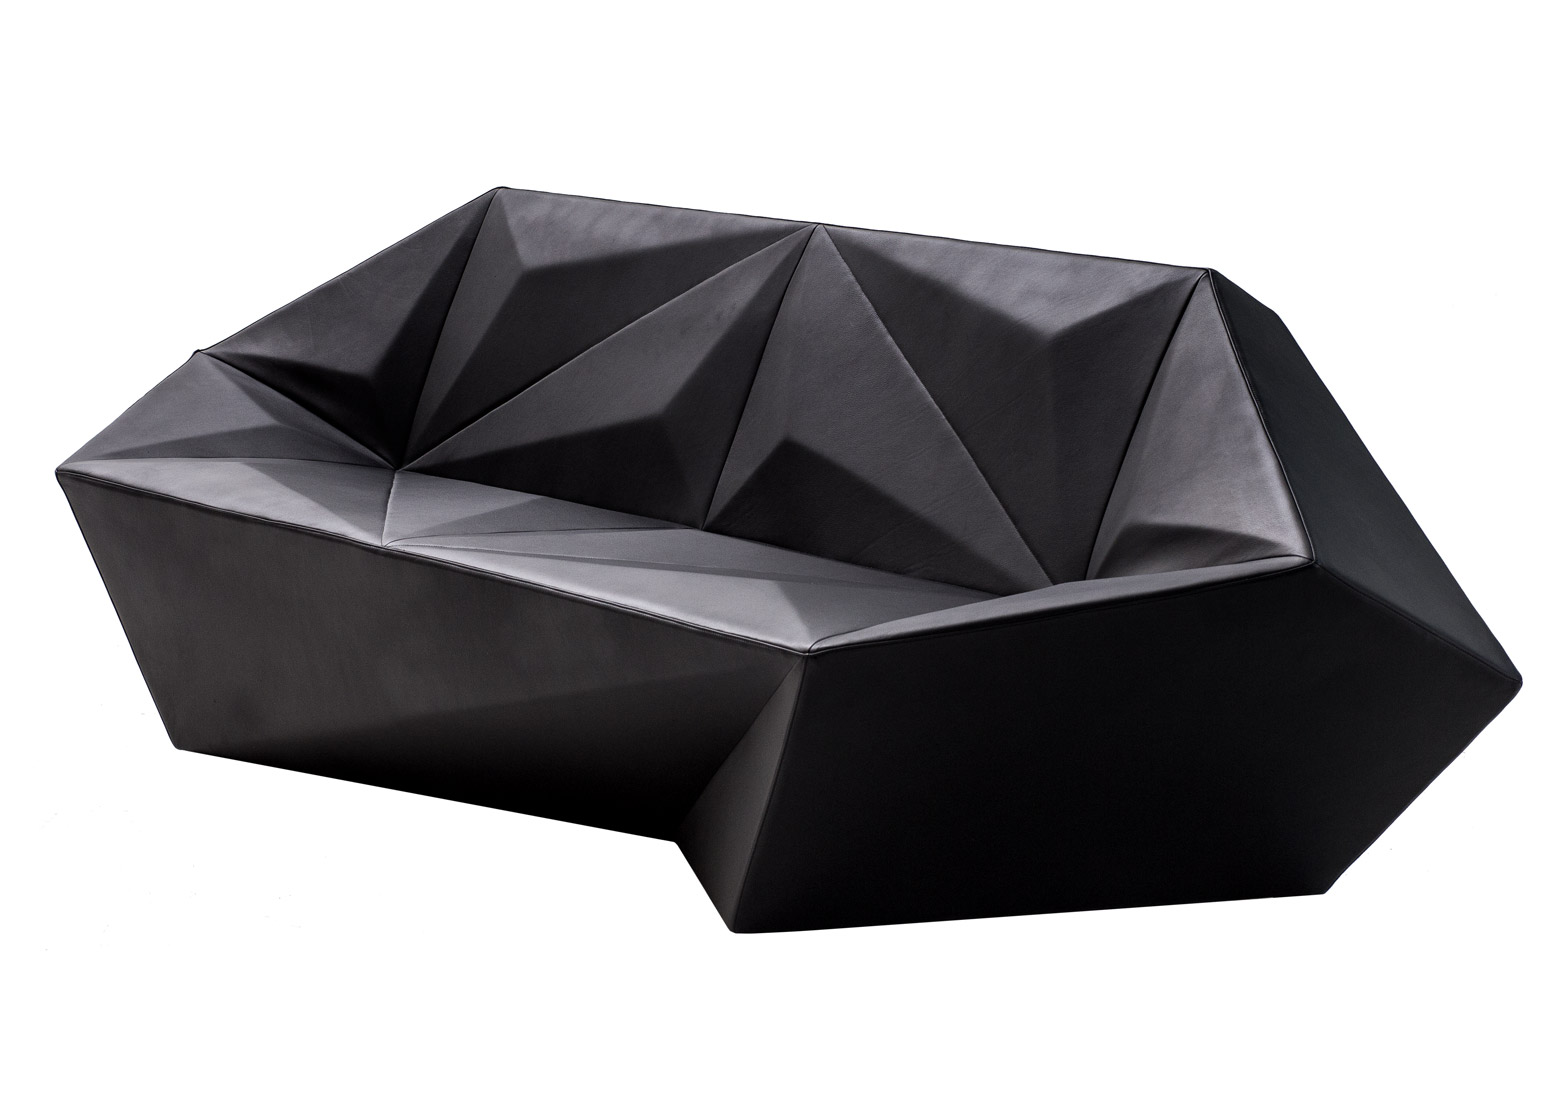 Gemma seating collection for Moroso by Daniel Libeskind